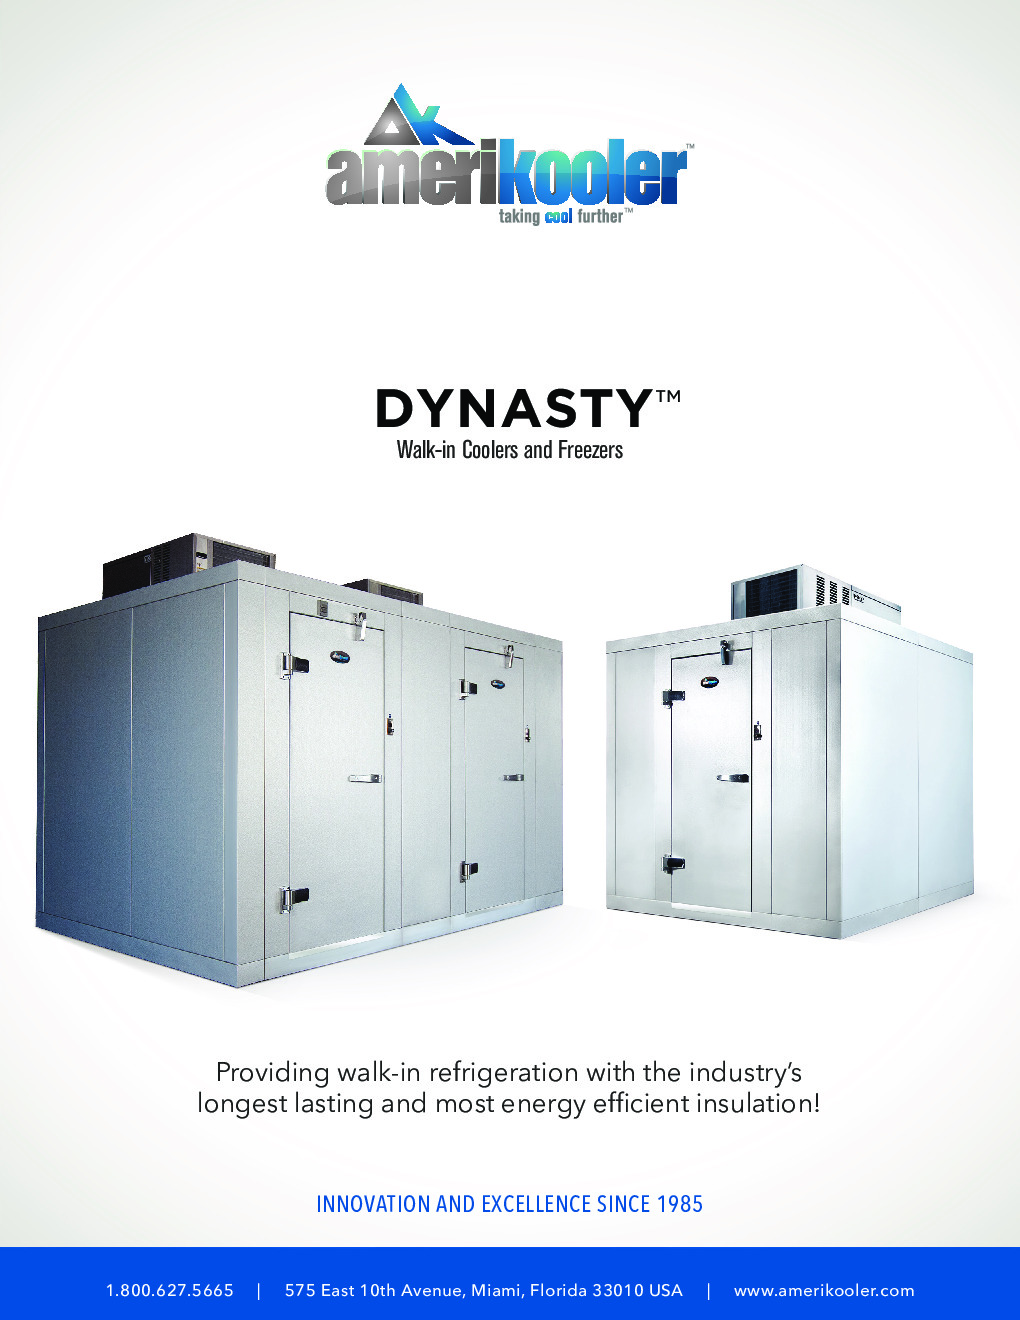 AmeriKooler DW091577N-4/11-SC 9' X 15' Walk-In Cooler, 11' L Cooler without Floor and 4' L Freezer, Self Contained